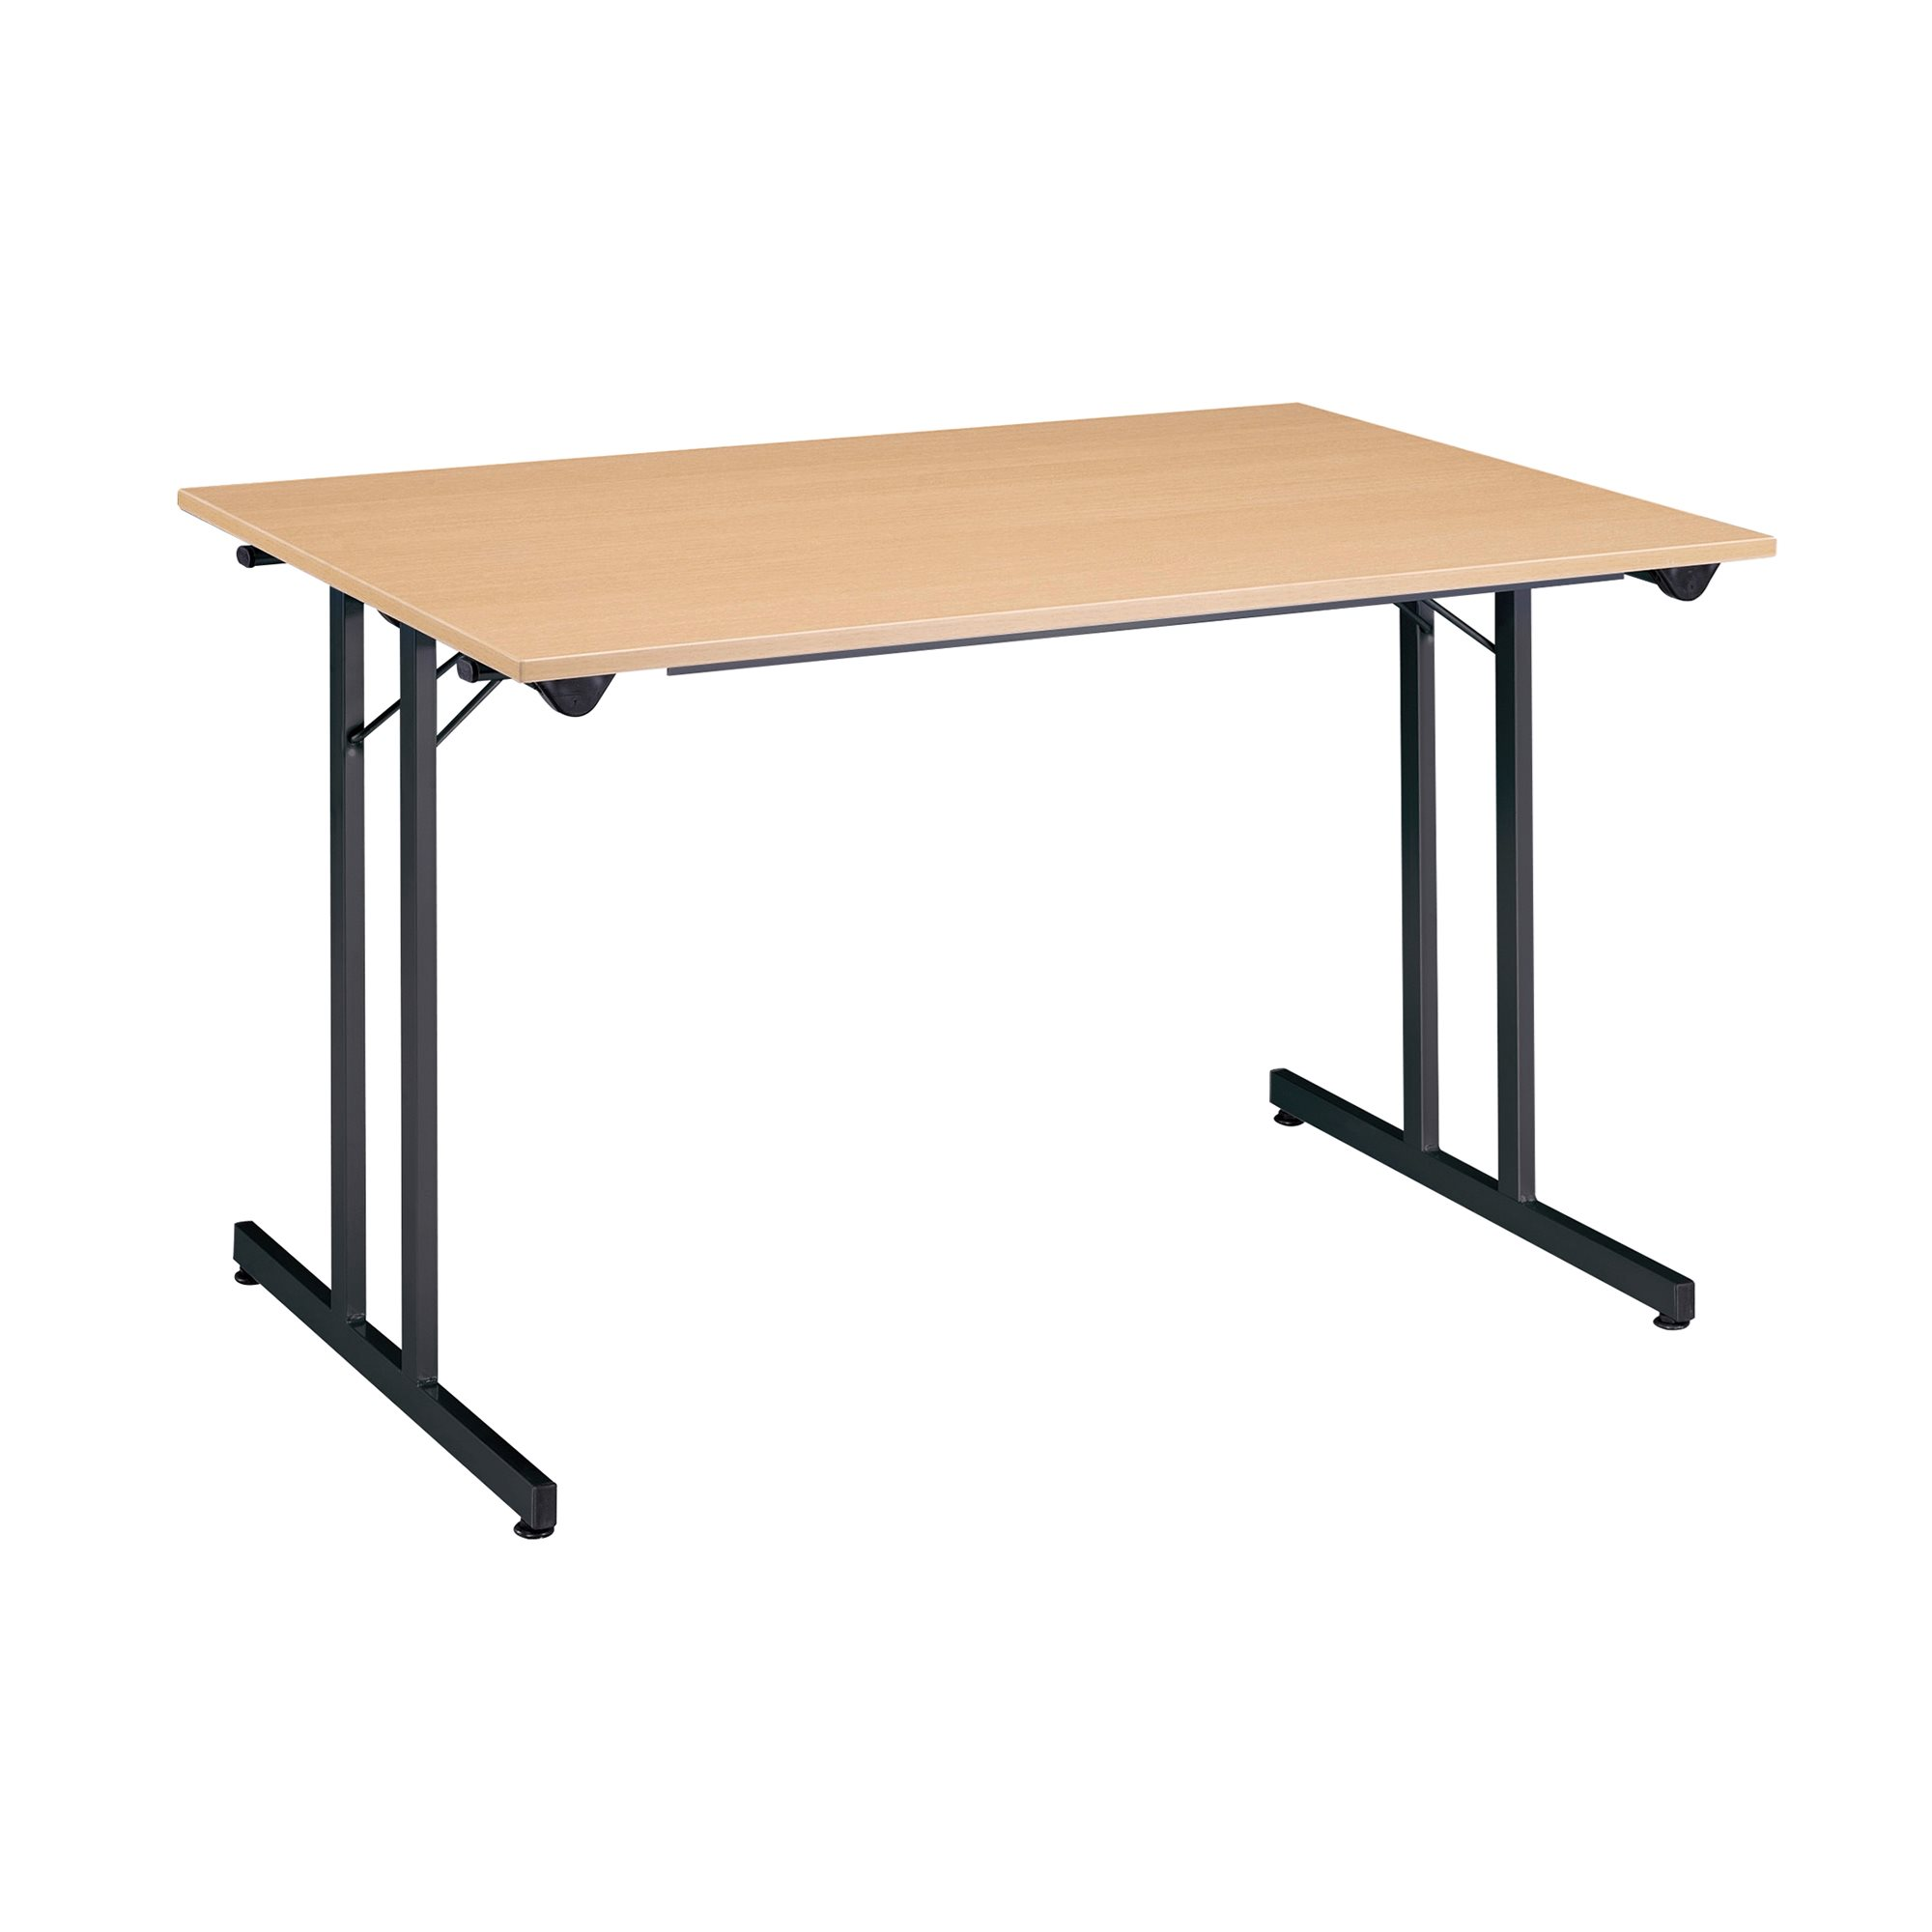 Pack 2 multifunctional folding tables - 1 paid = 1 identical for free